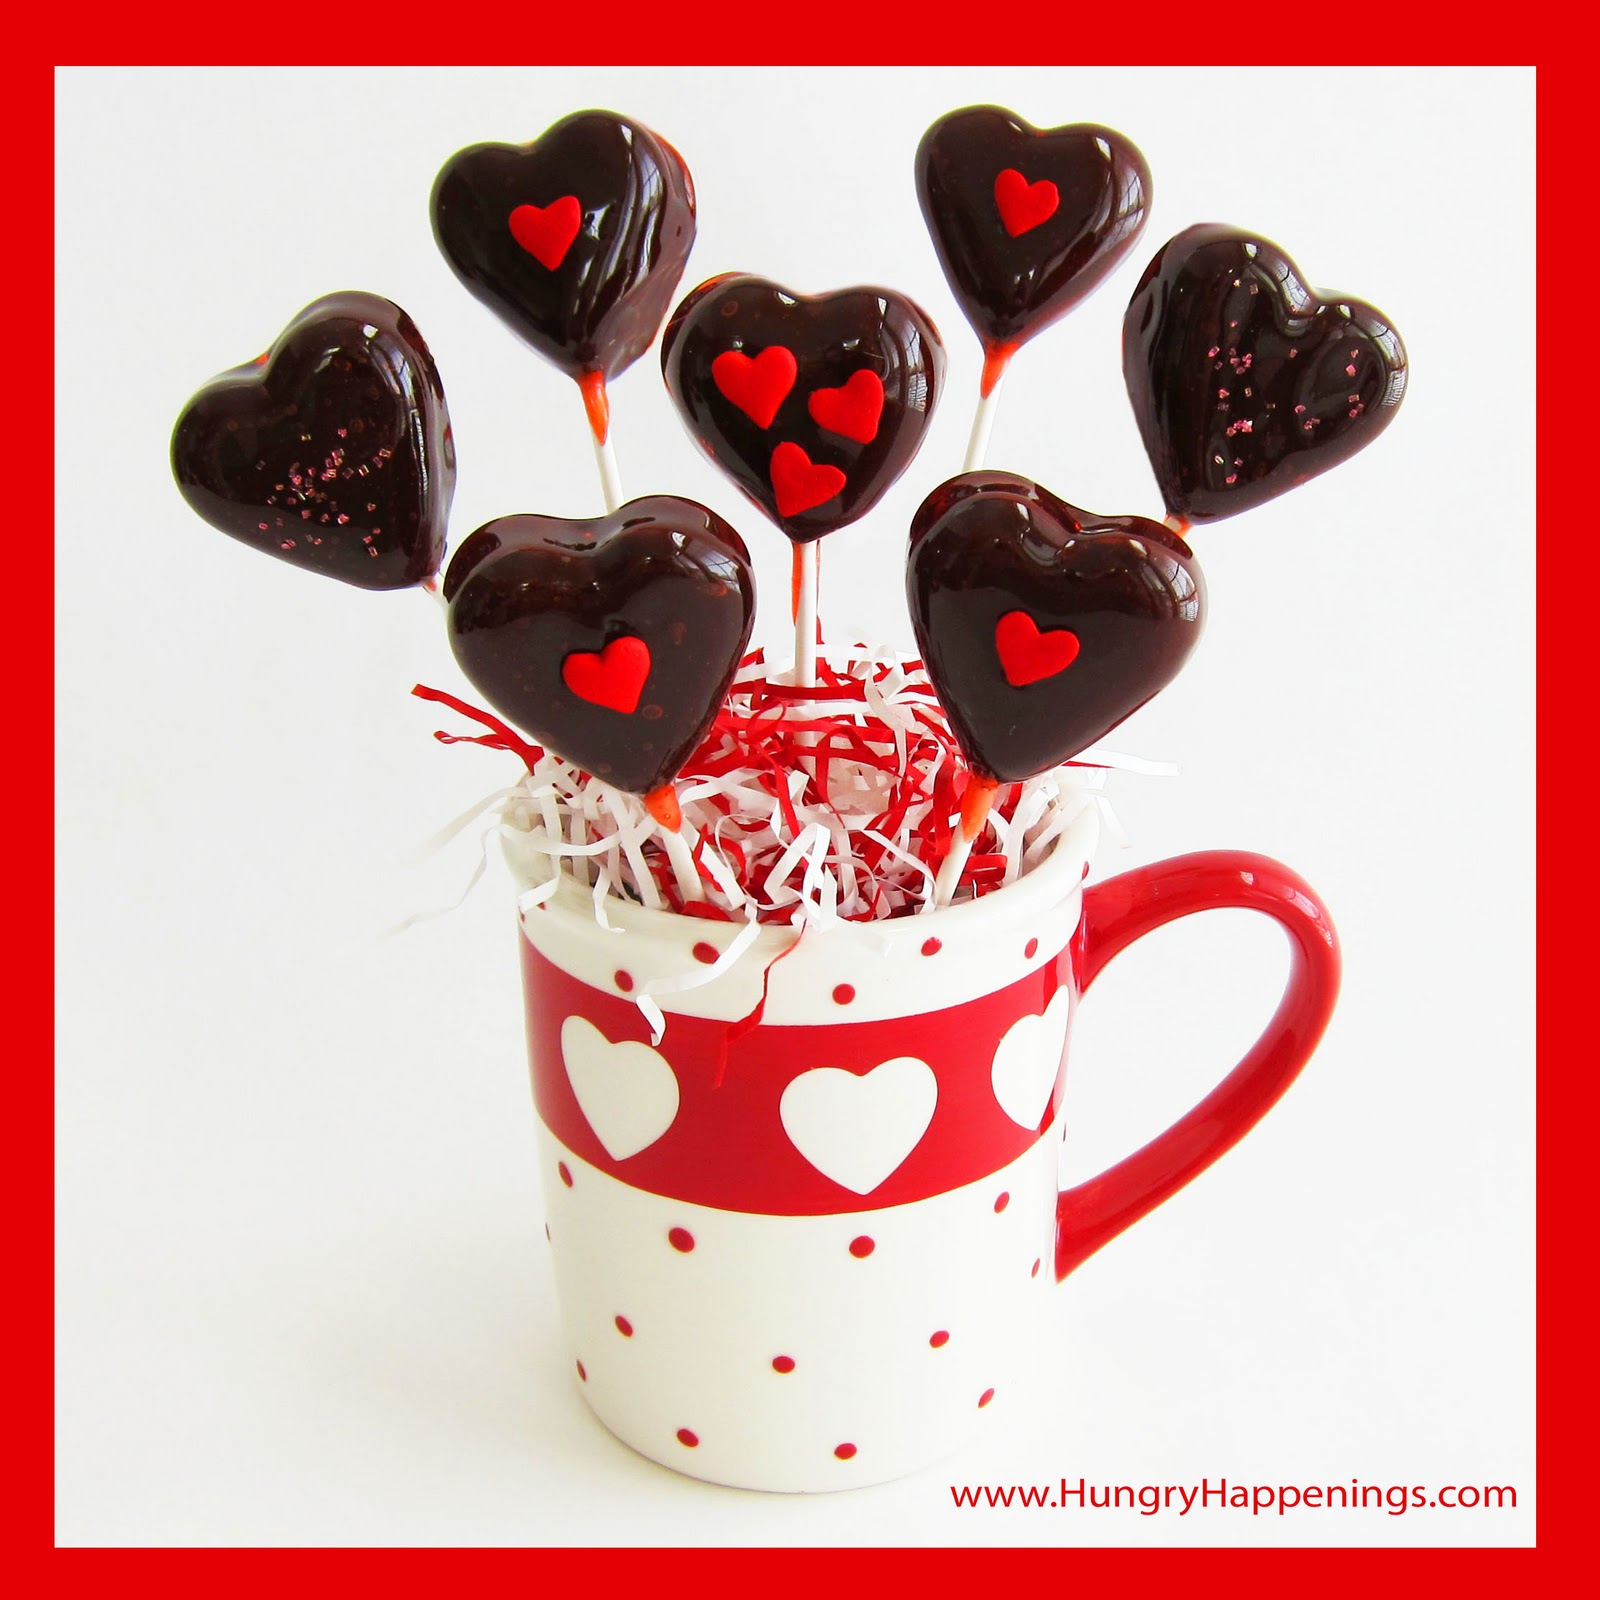 Cherry Heart Pops With Chewy Chocolate Centers